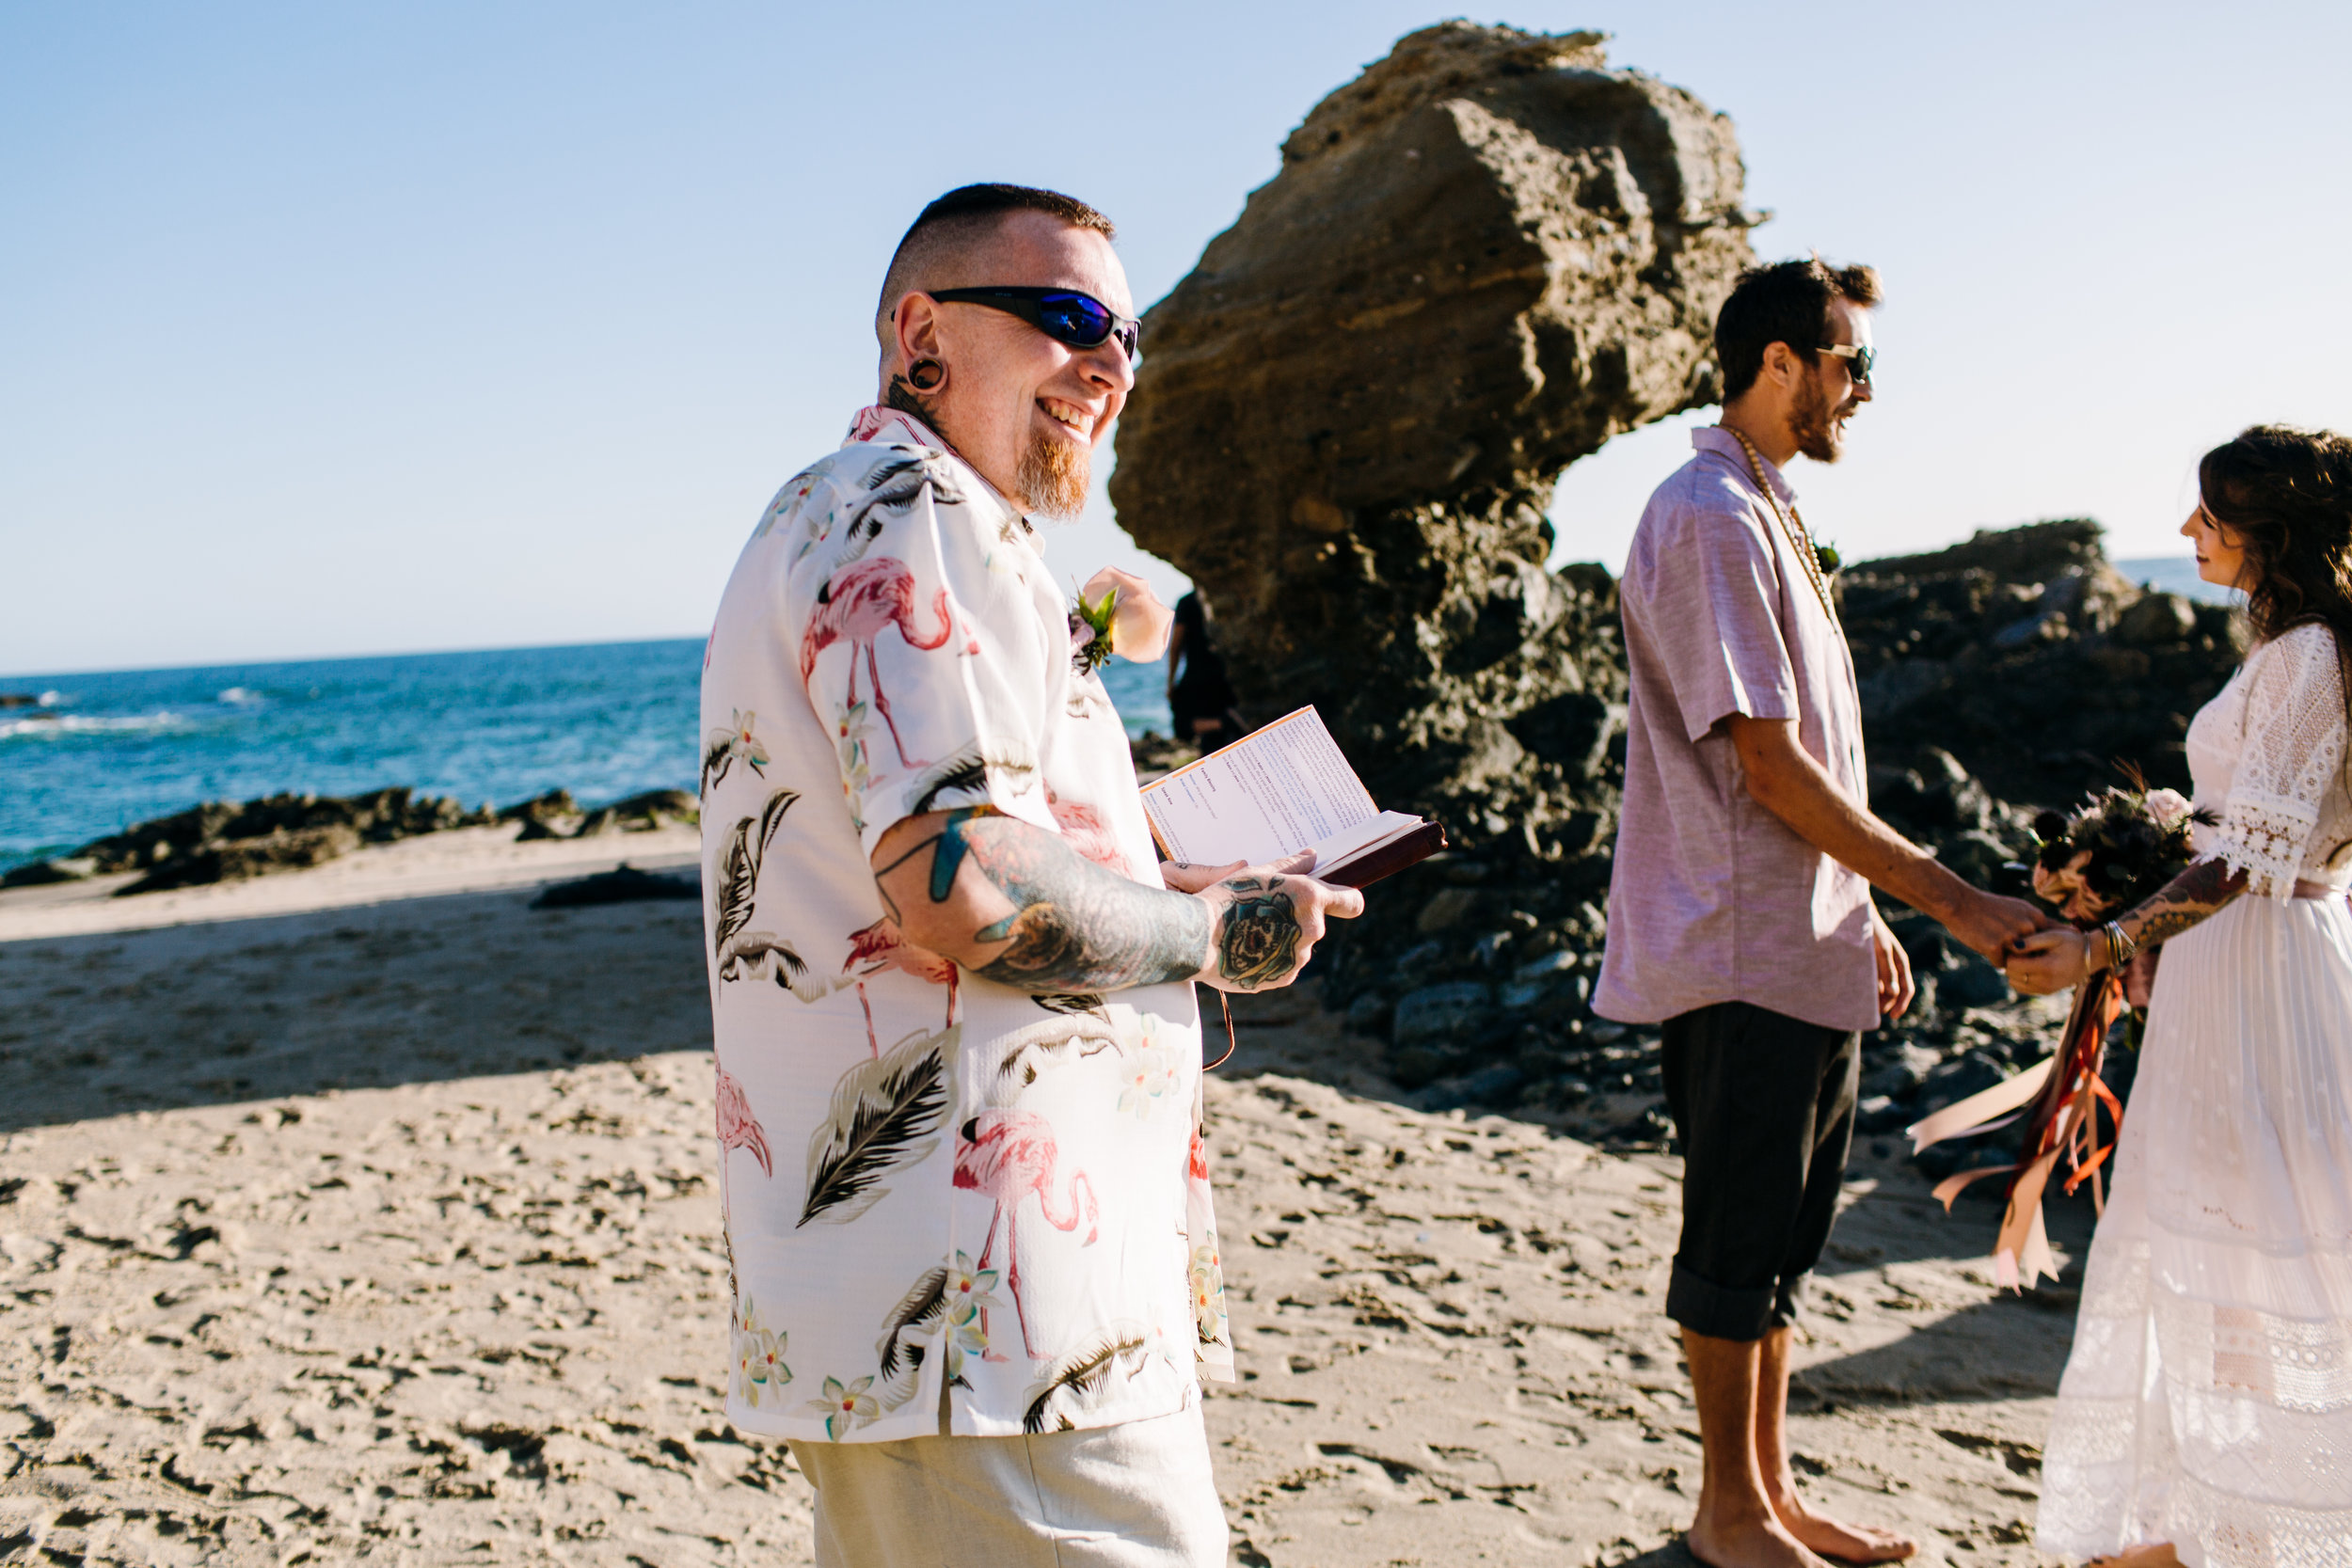 KaraNixonWeddings-LagunaBeach-Tablerock-Elopement-9.jpg